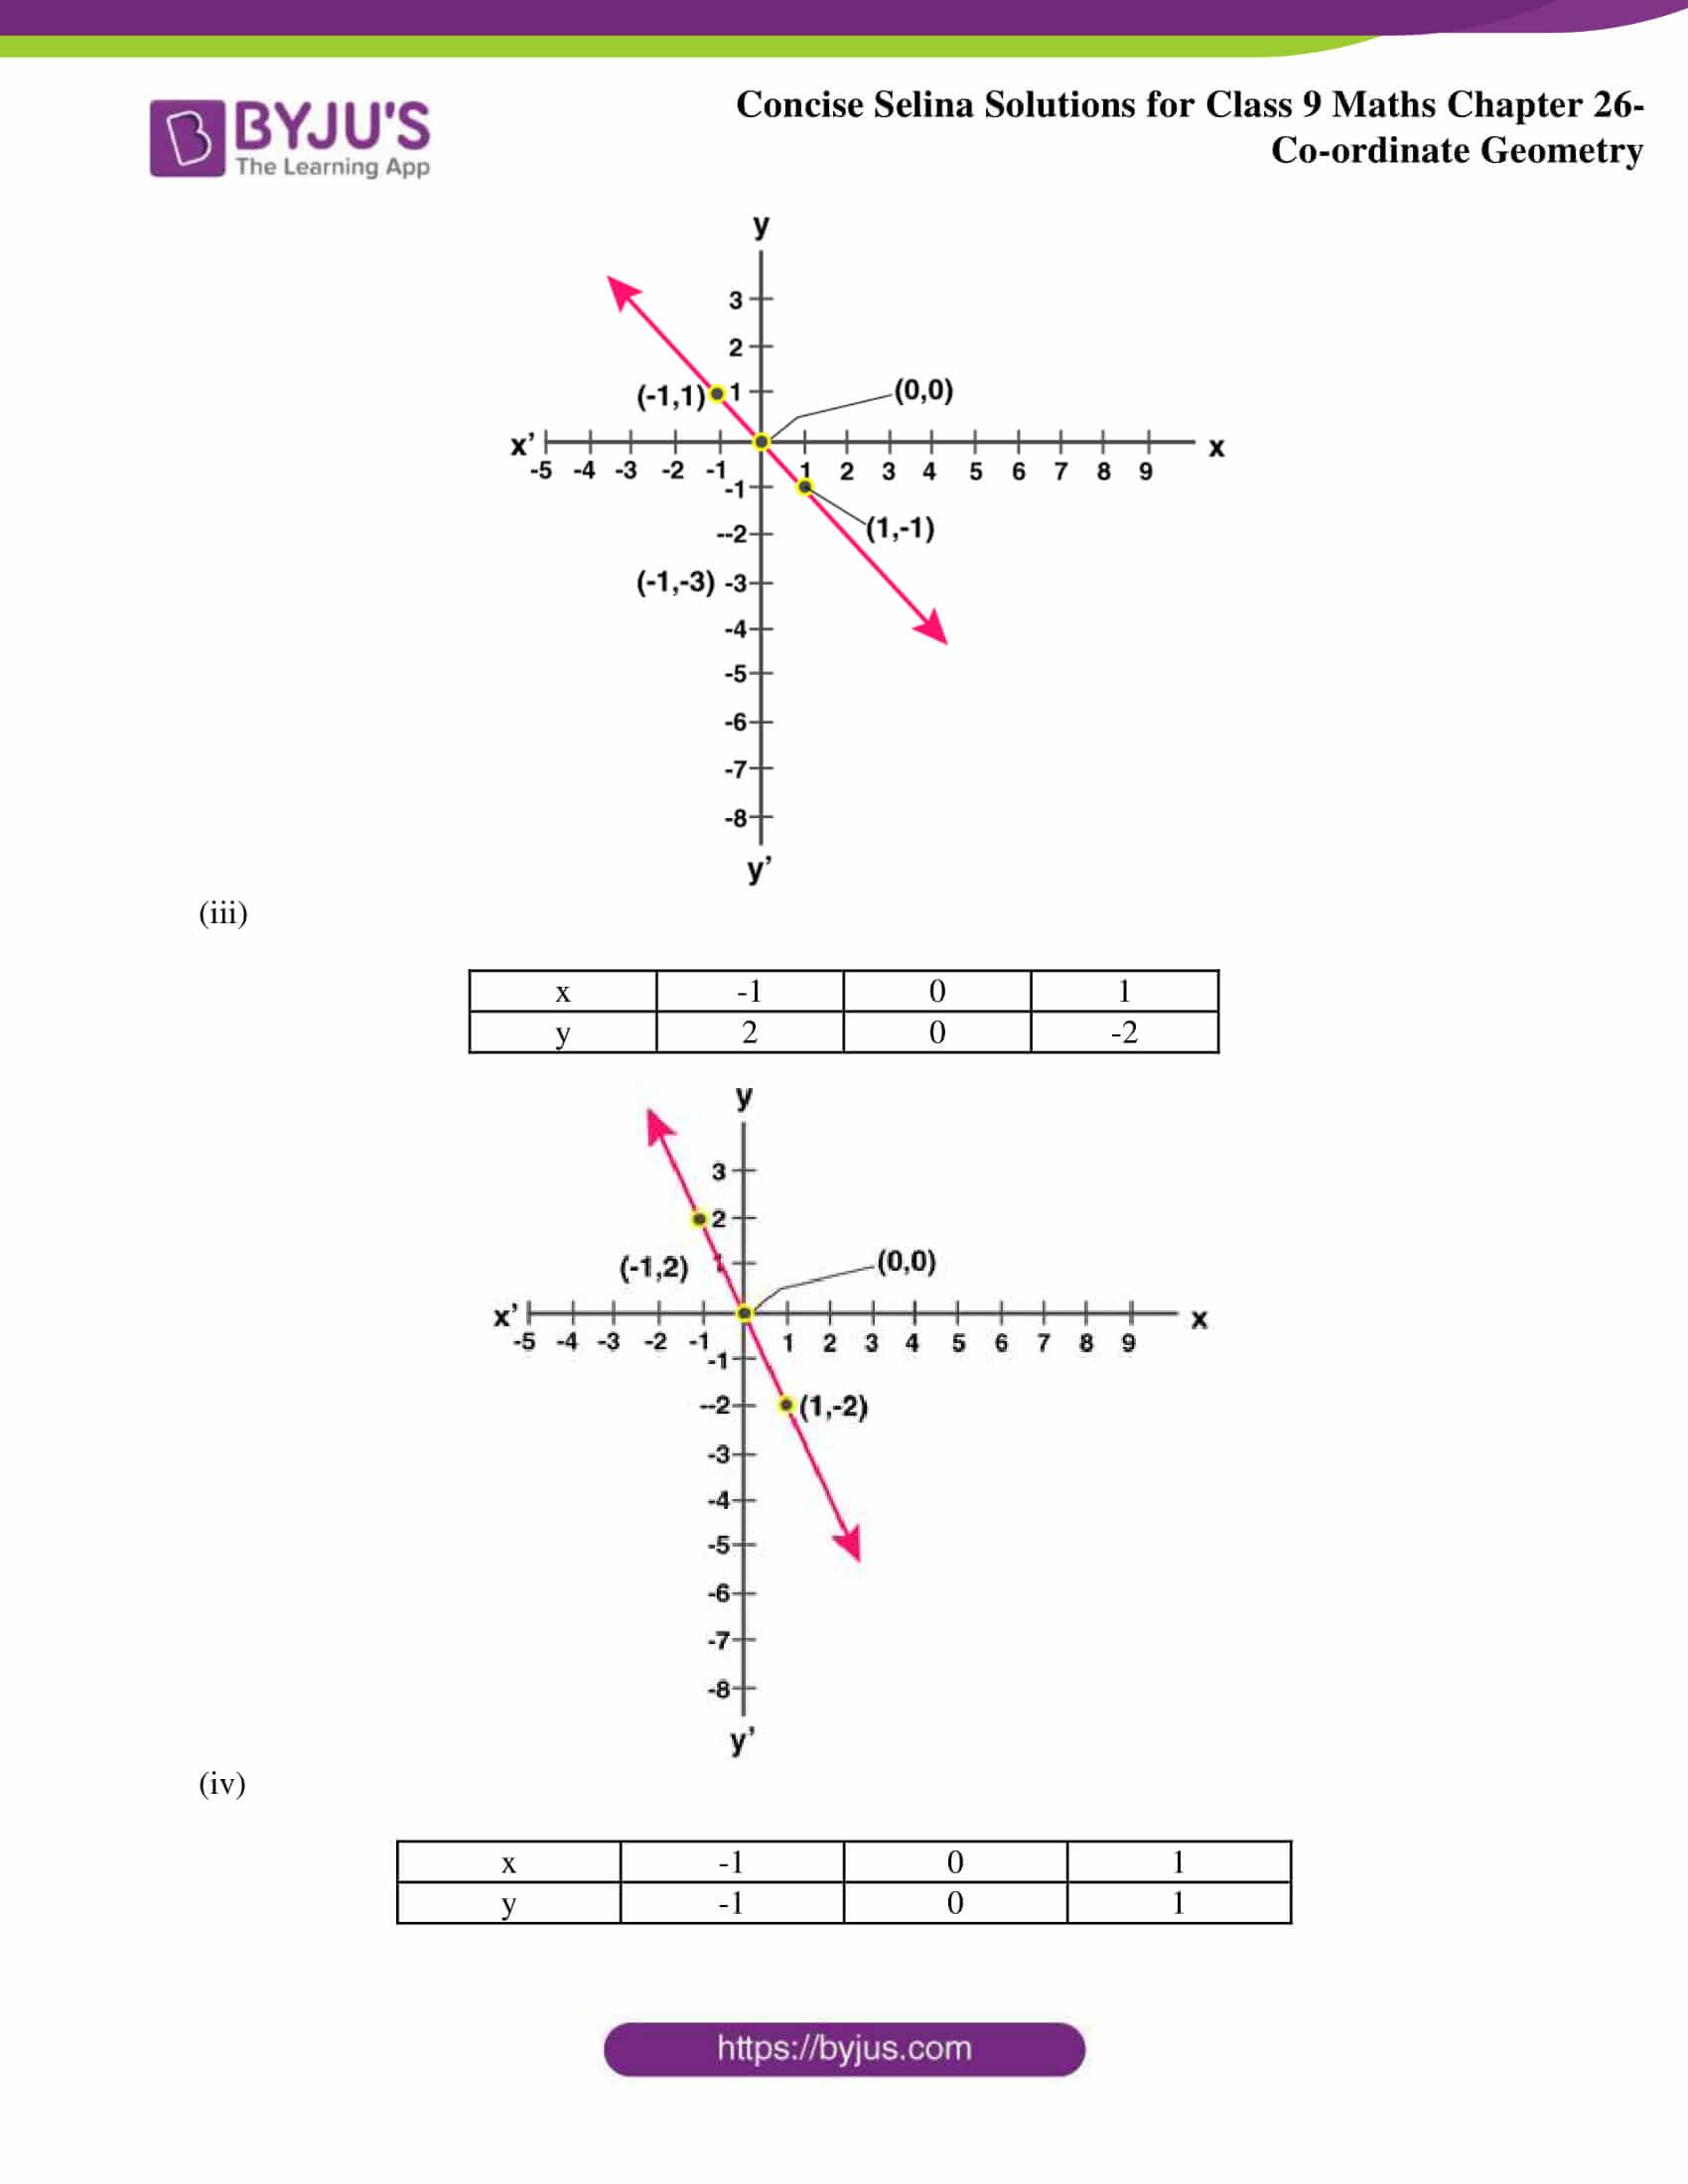 Selina Solutions for Class 9 Maths Chapter 26 part 23